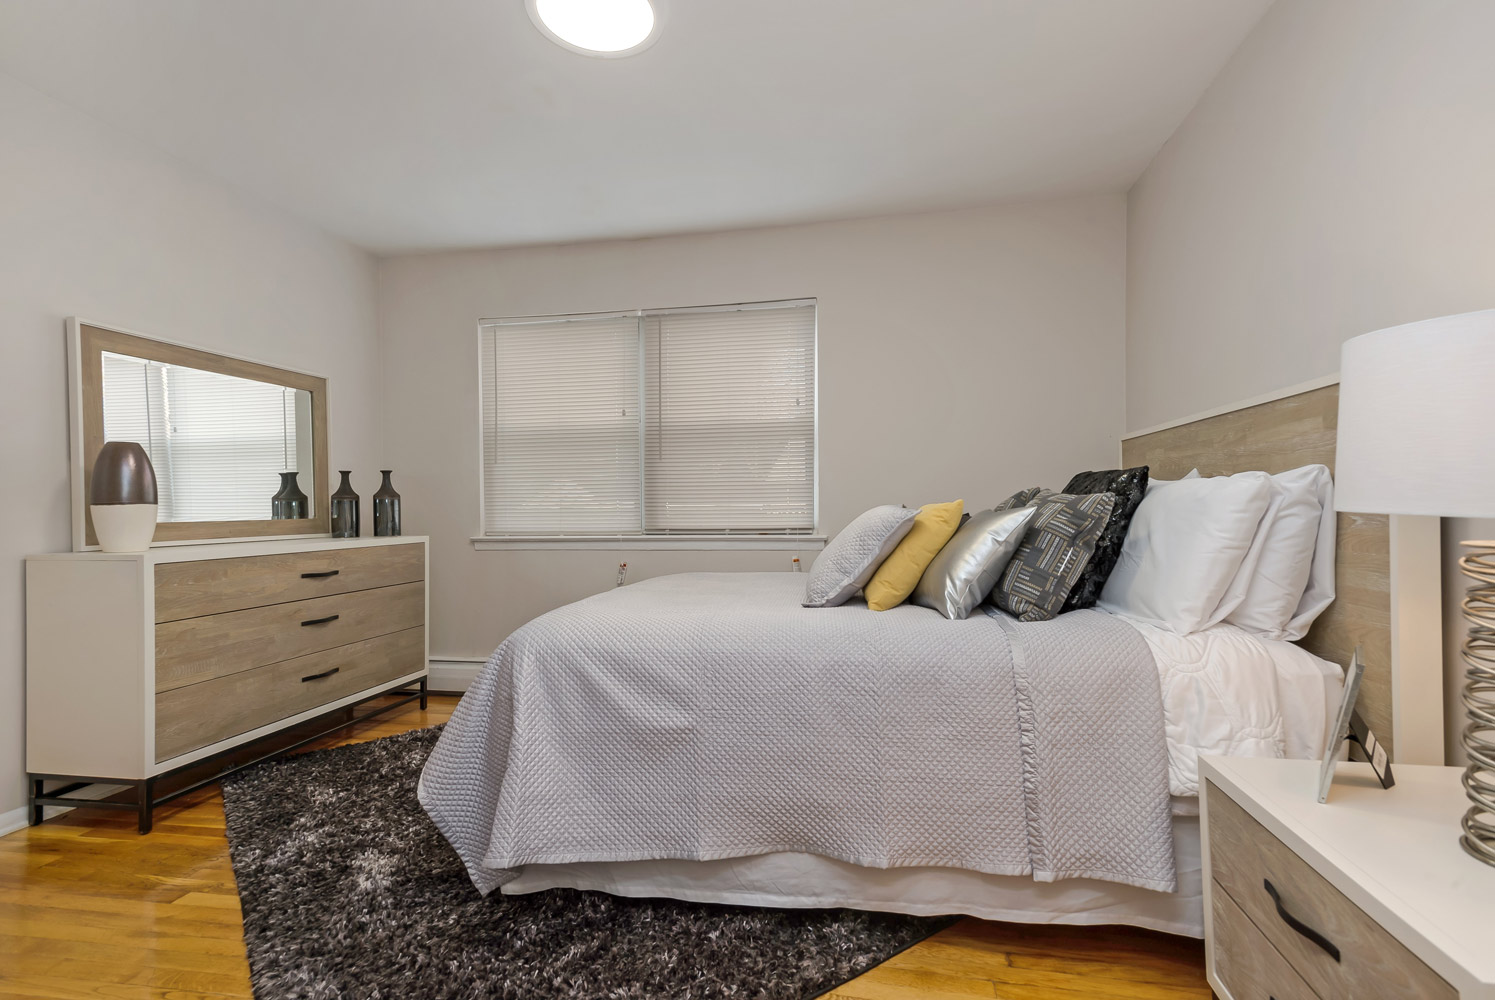 Interior Bedroom at Grandview Gardens Apartments in Edison, New Jersey